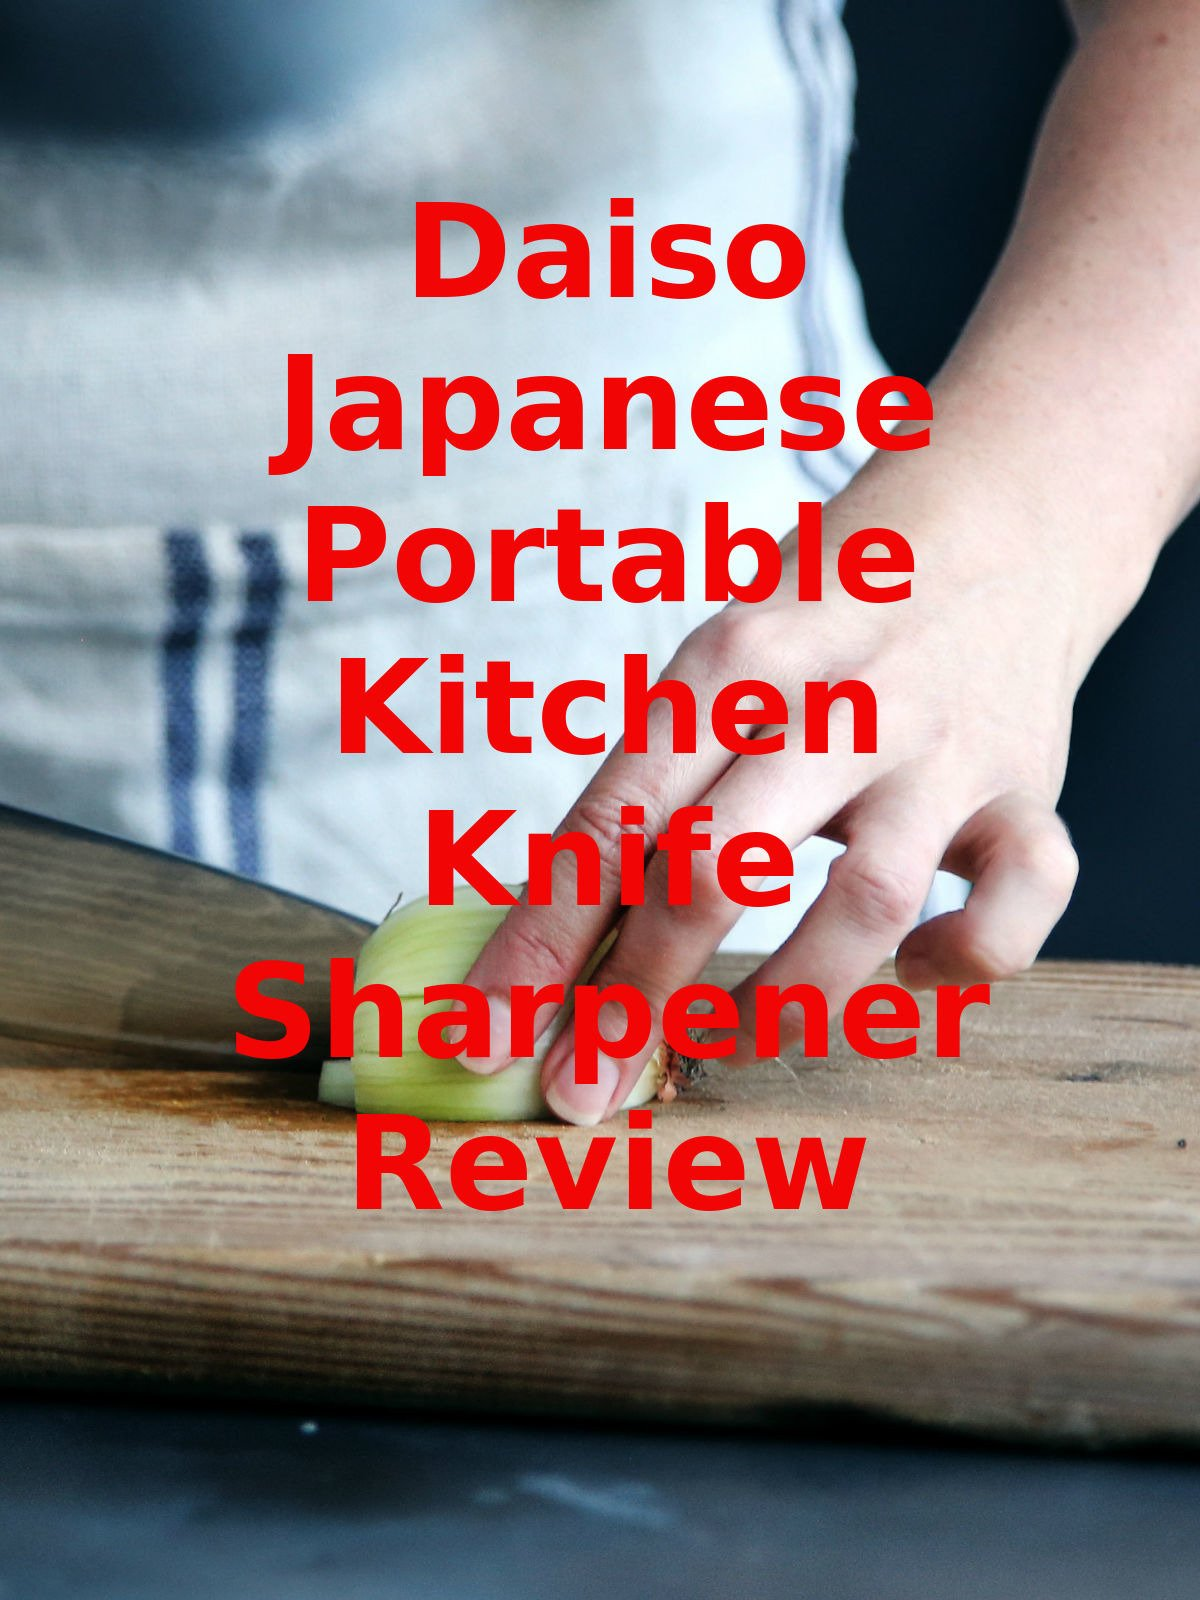 Review: Daiso Japanese Portable Kitchen Knife Sharpener Review